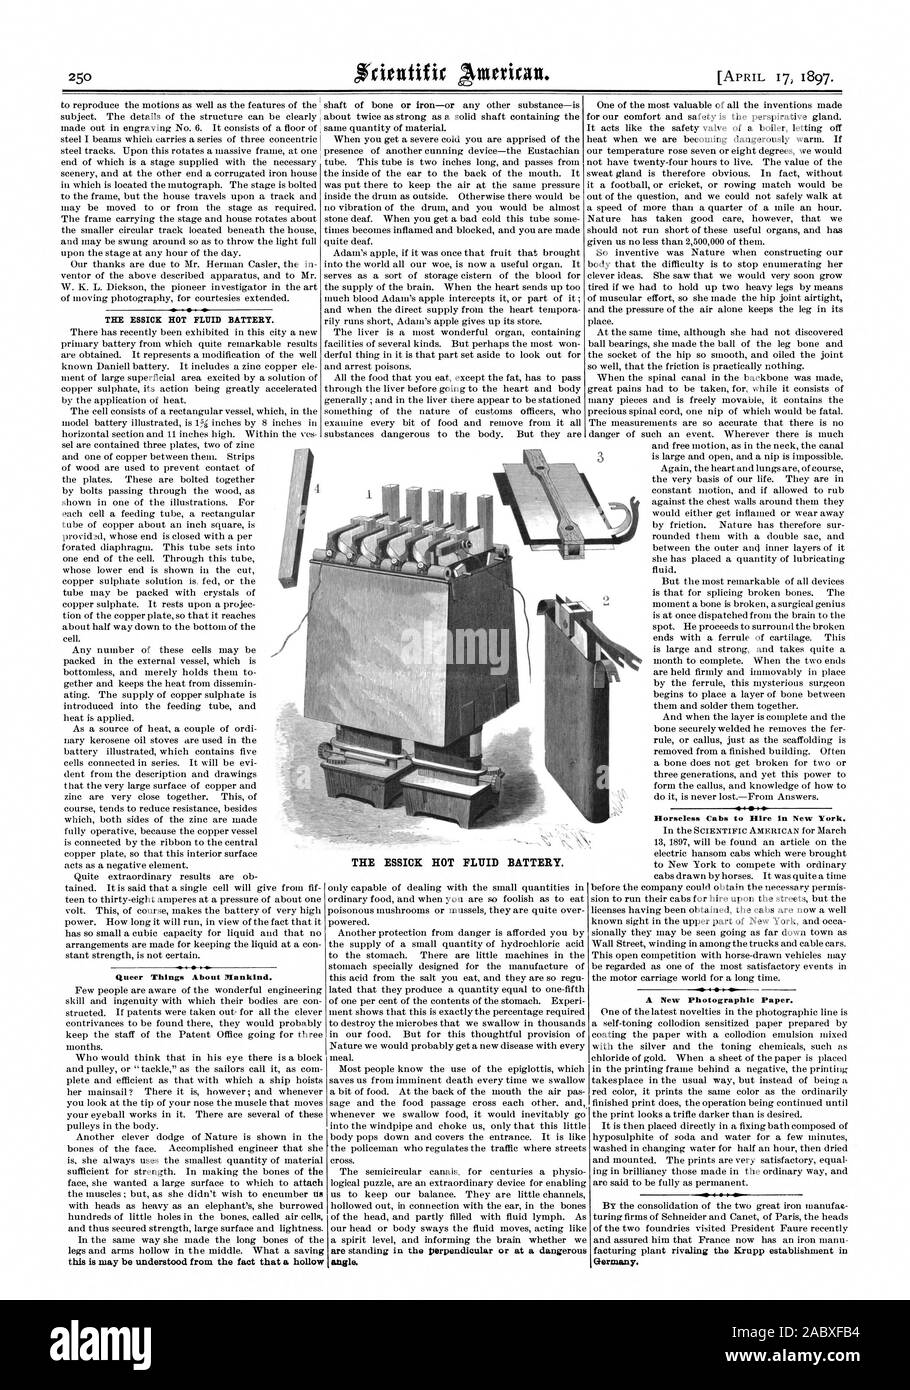 THE MICK HOT FLUID BATTERY. Queer Things About Mankind. this is may be understood from the fact that a hollow Horseless Cabs to Hire in New York. A New Photographic Paper. Germany. THE ESSICK HOT FLUID BATTERY. angle., scientific american, 1897-04-17 Stock Photo